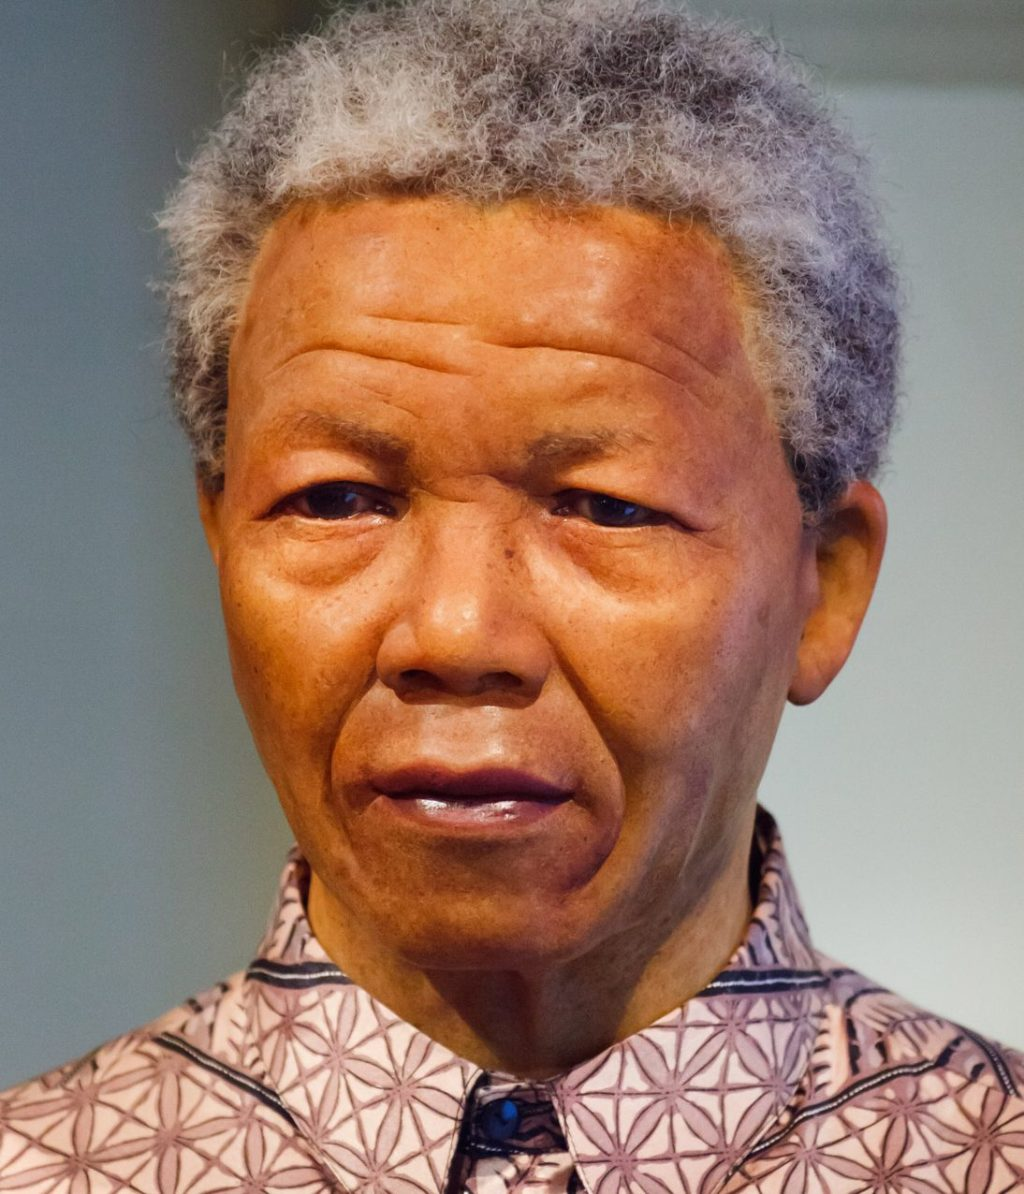 The Mandela Effect was first observed when many reportedly thought that Nelson Mandela died in the 1980s, but he would not die until 2013. Photo by Vera Kratochvil and labeled for reuse under the public domain.